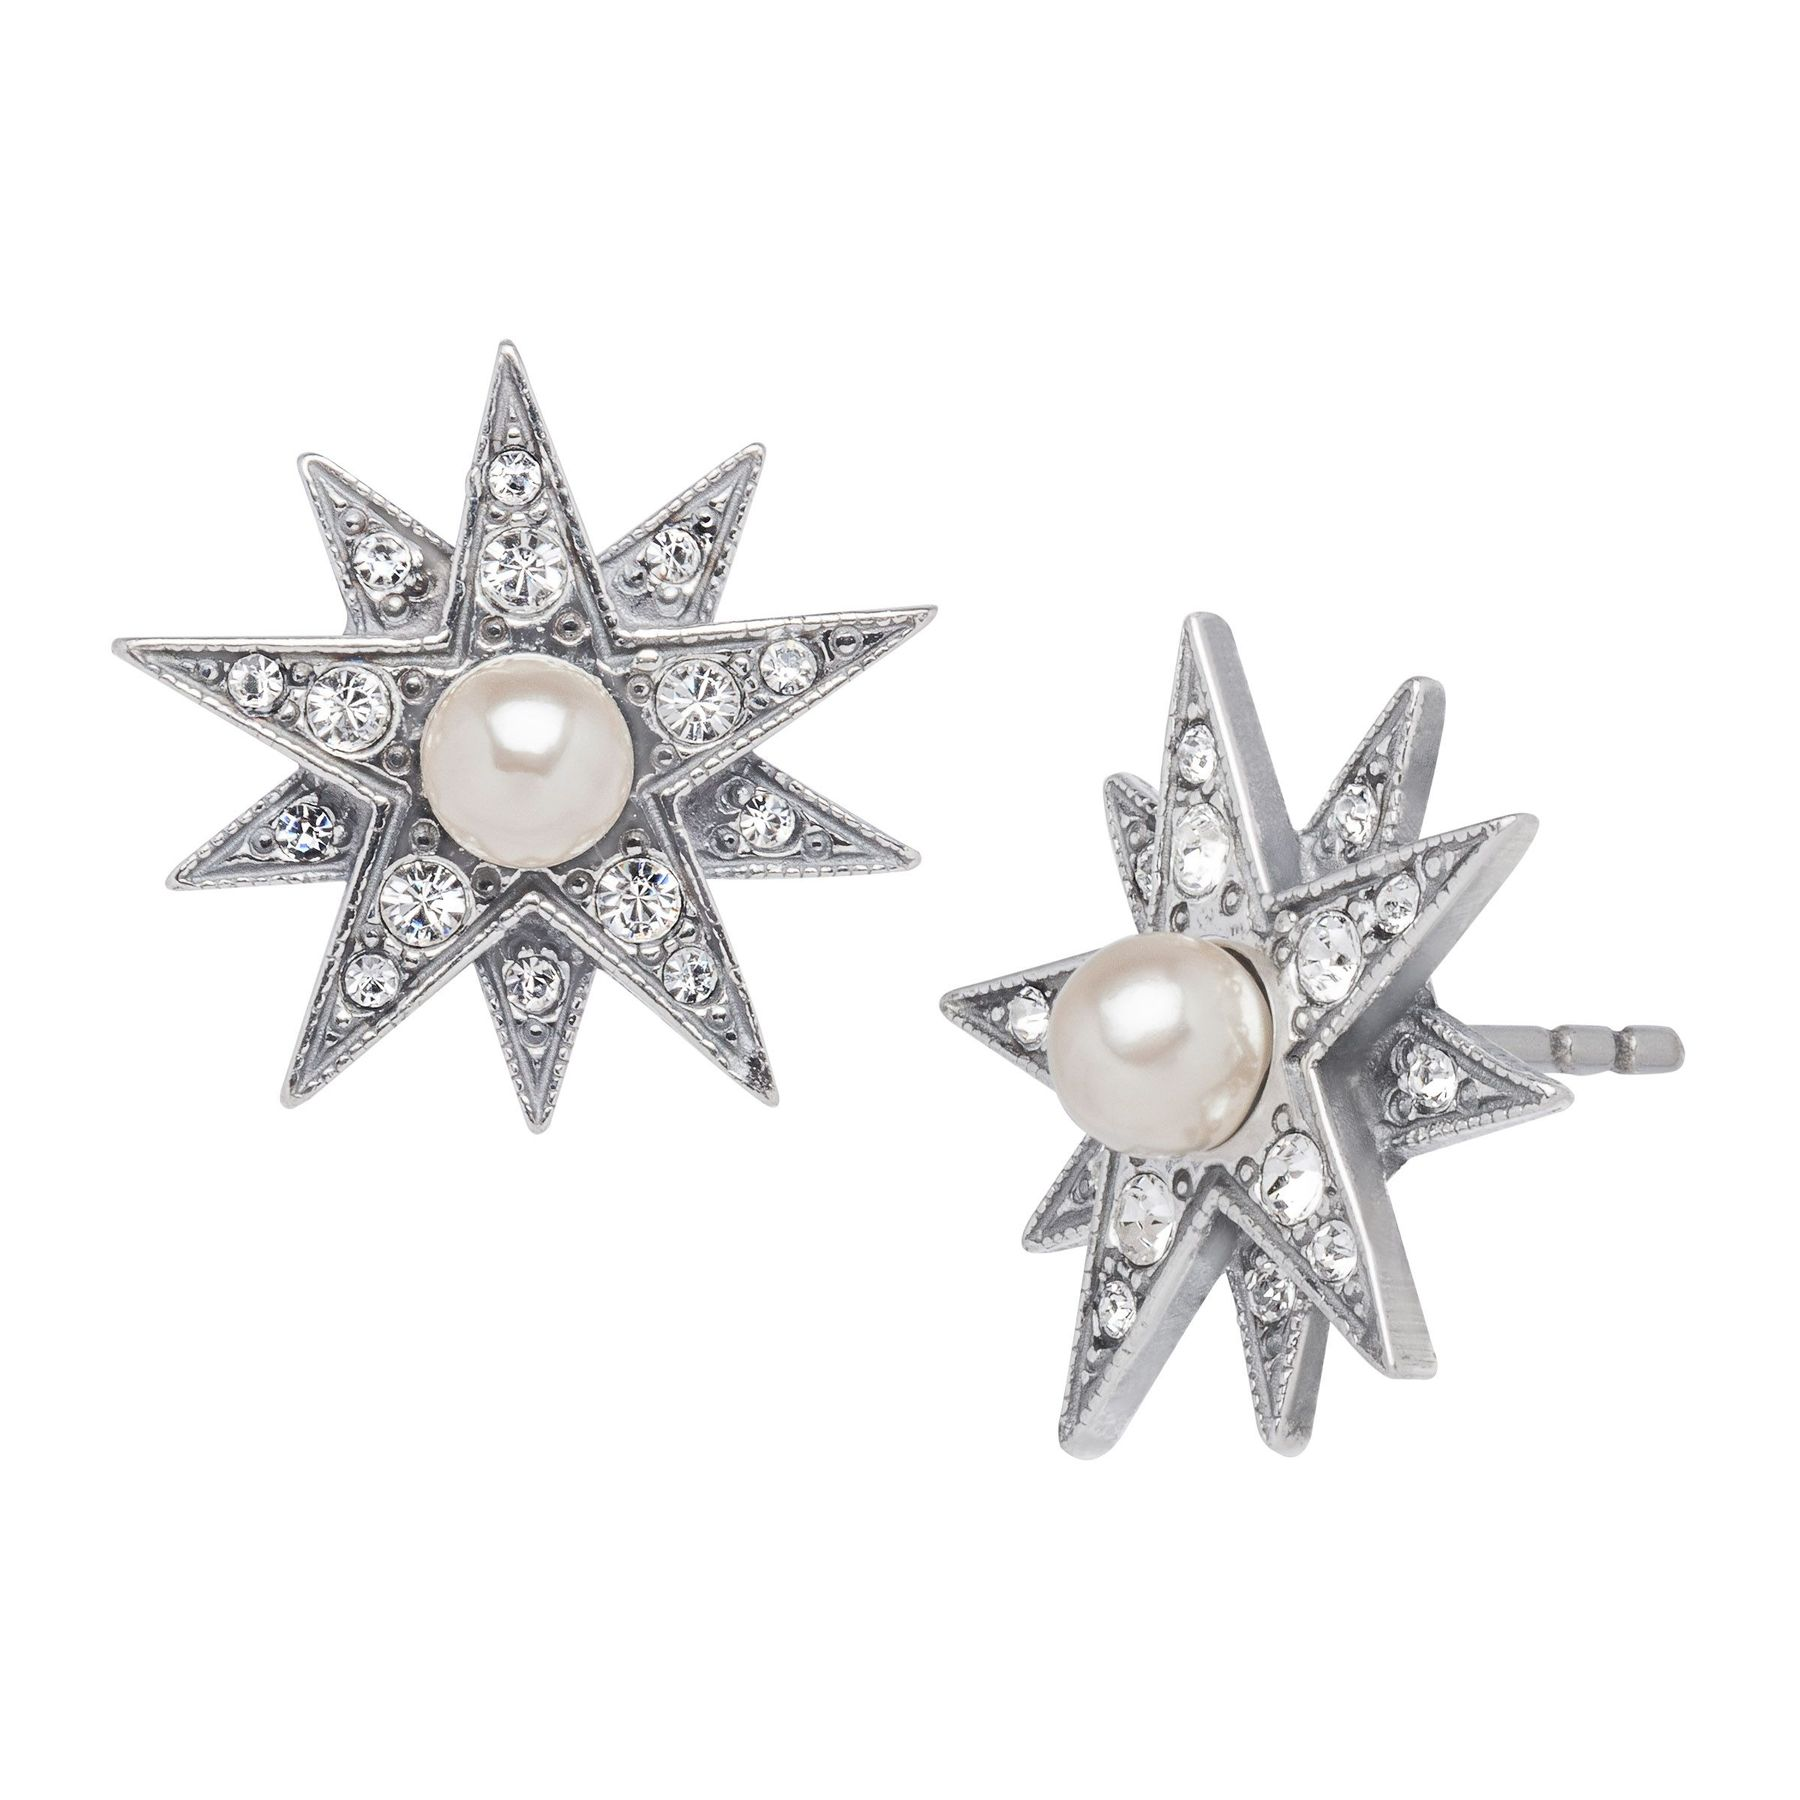 Van Kempen Victorian Simulated Pearl Star Earrings With Swarovski Crystals In Sterling Silver